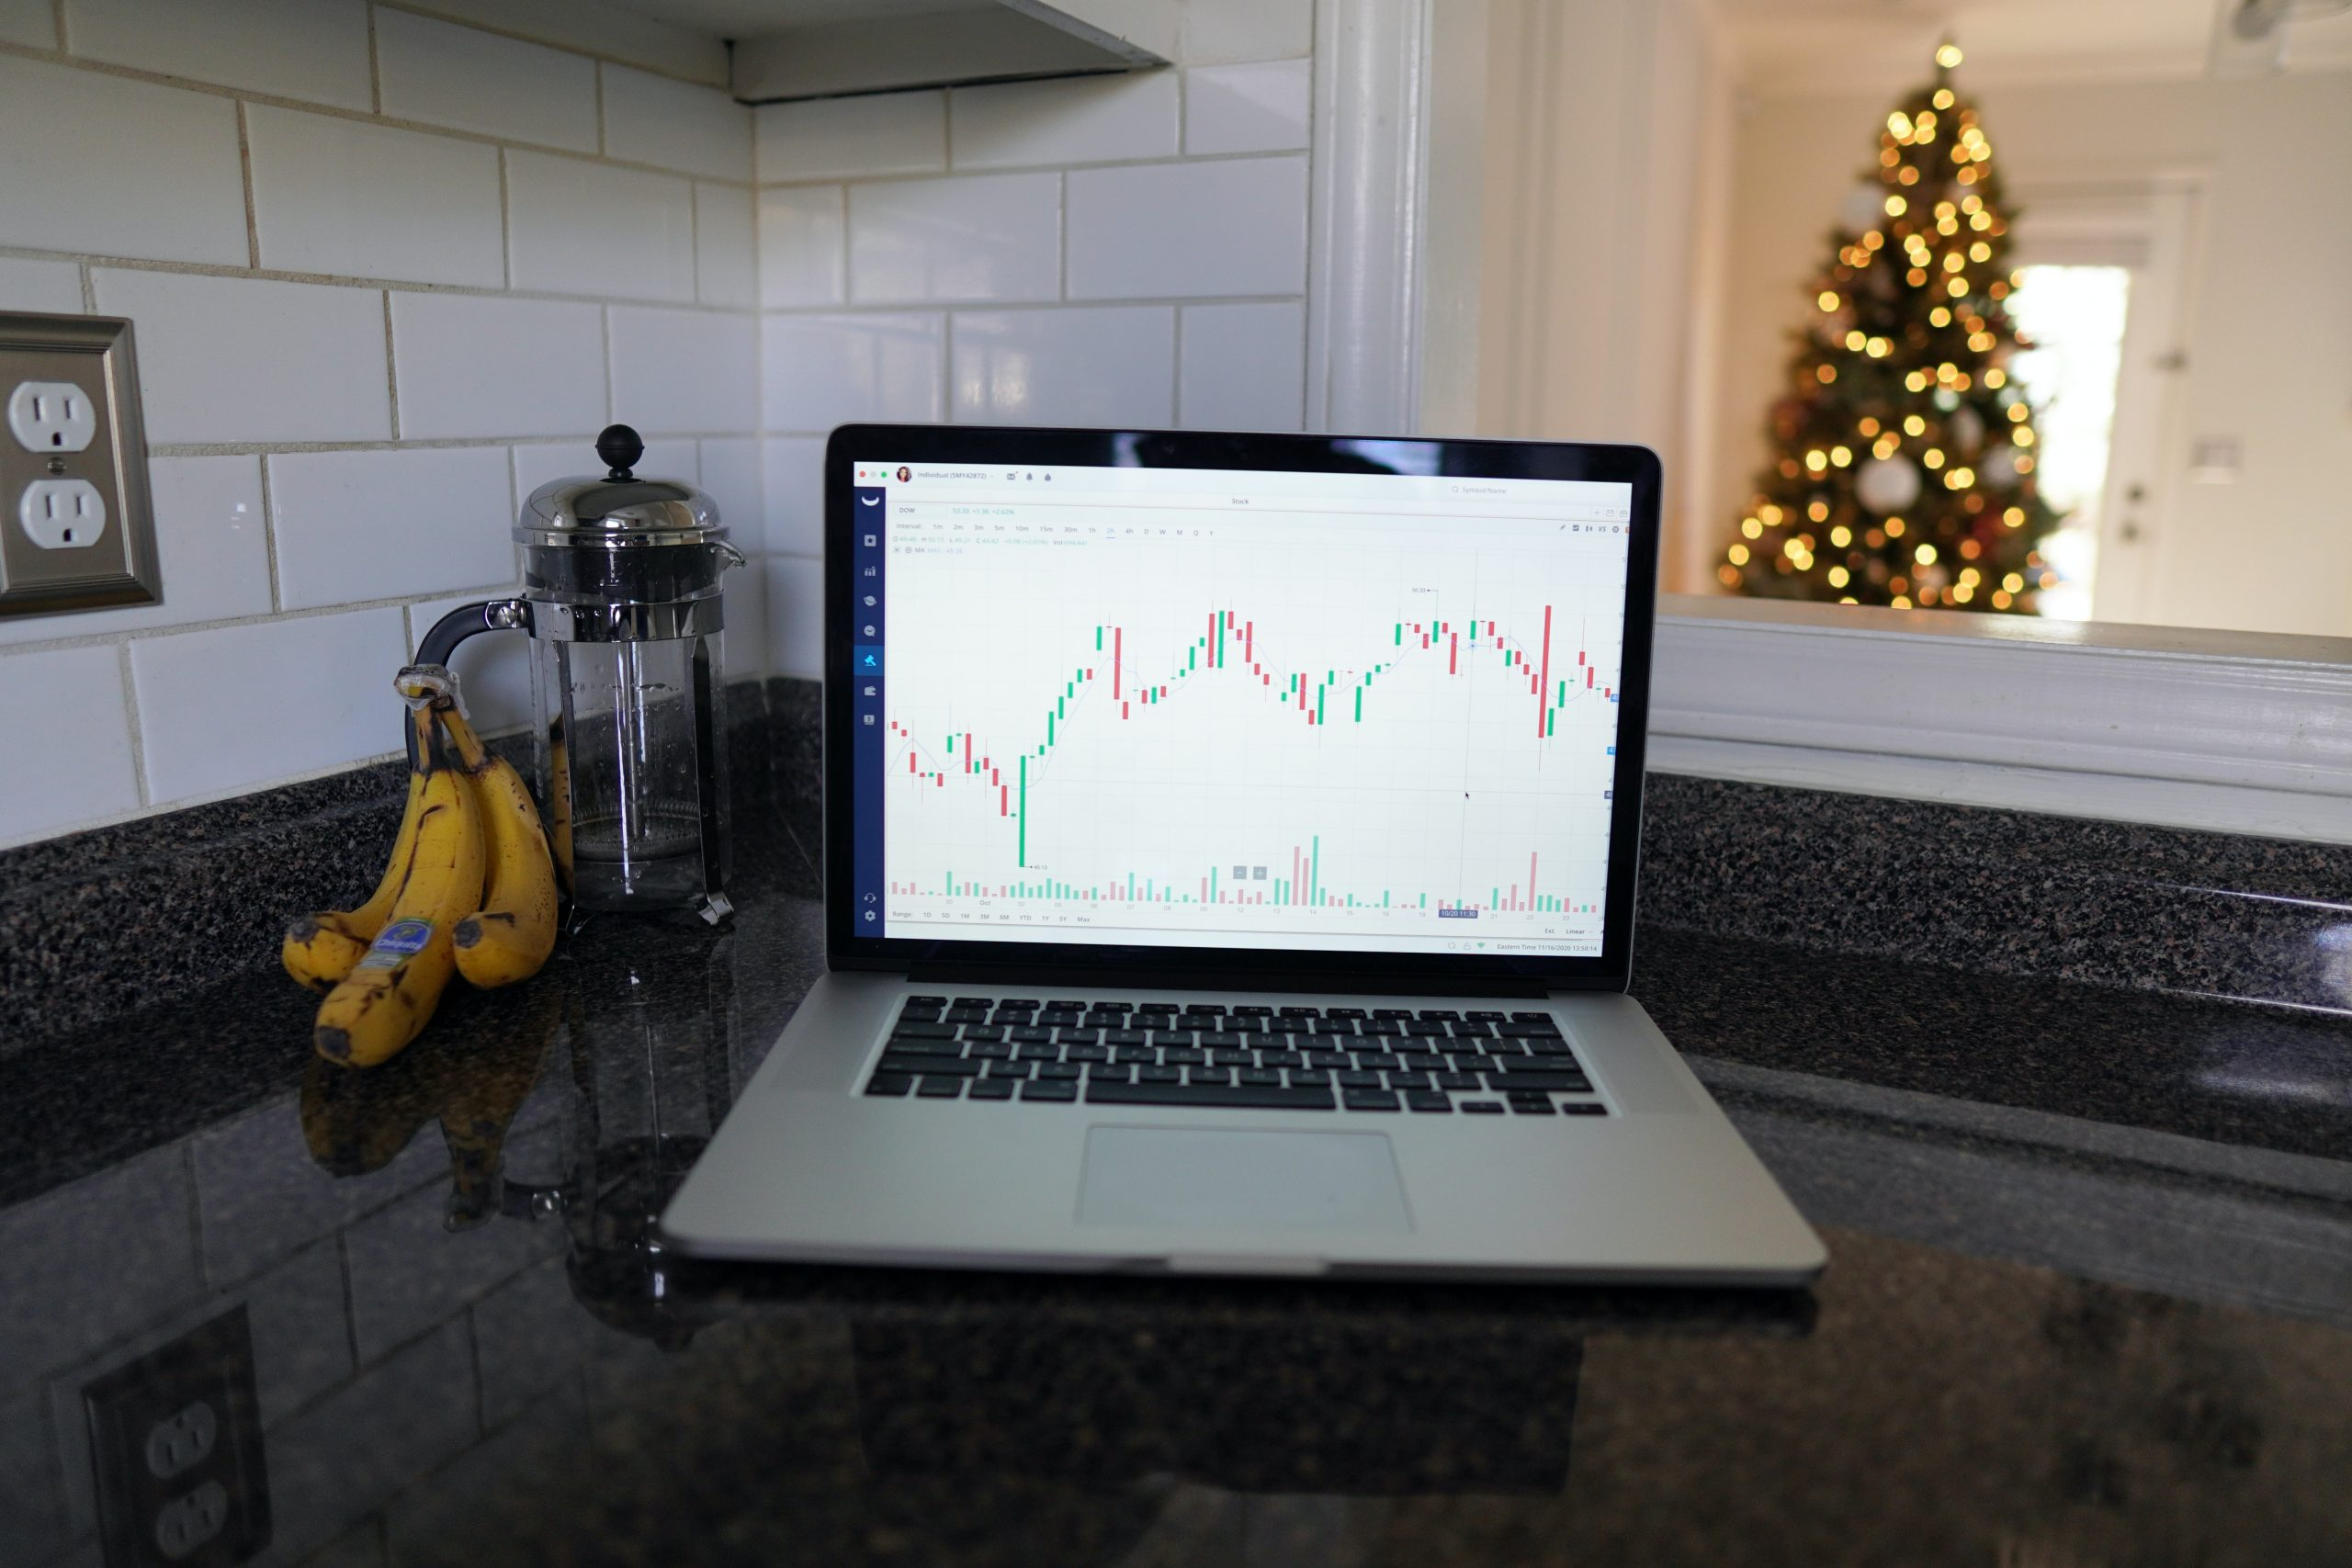 Laptop screen showing stock investing data